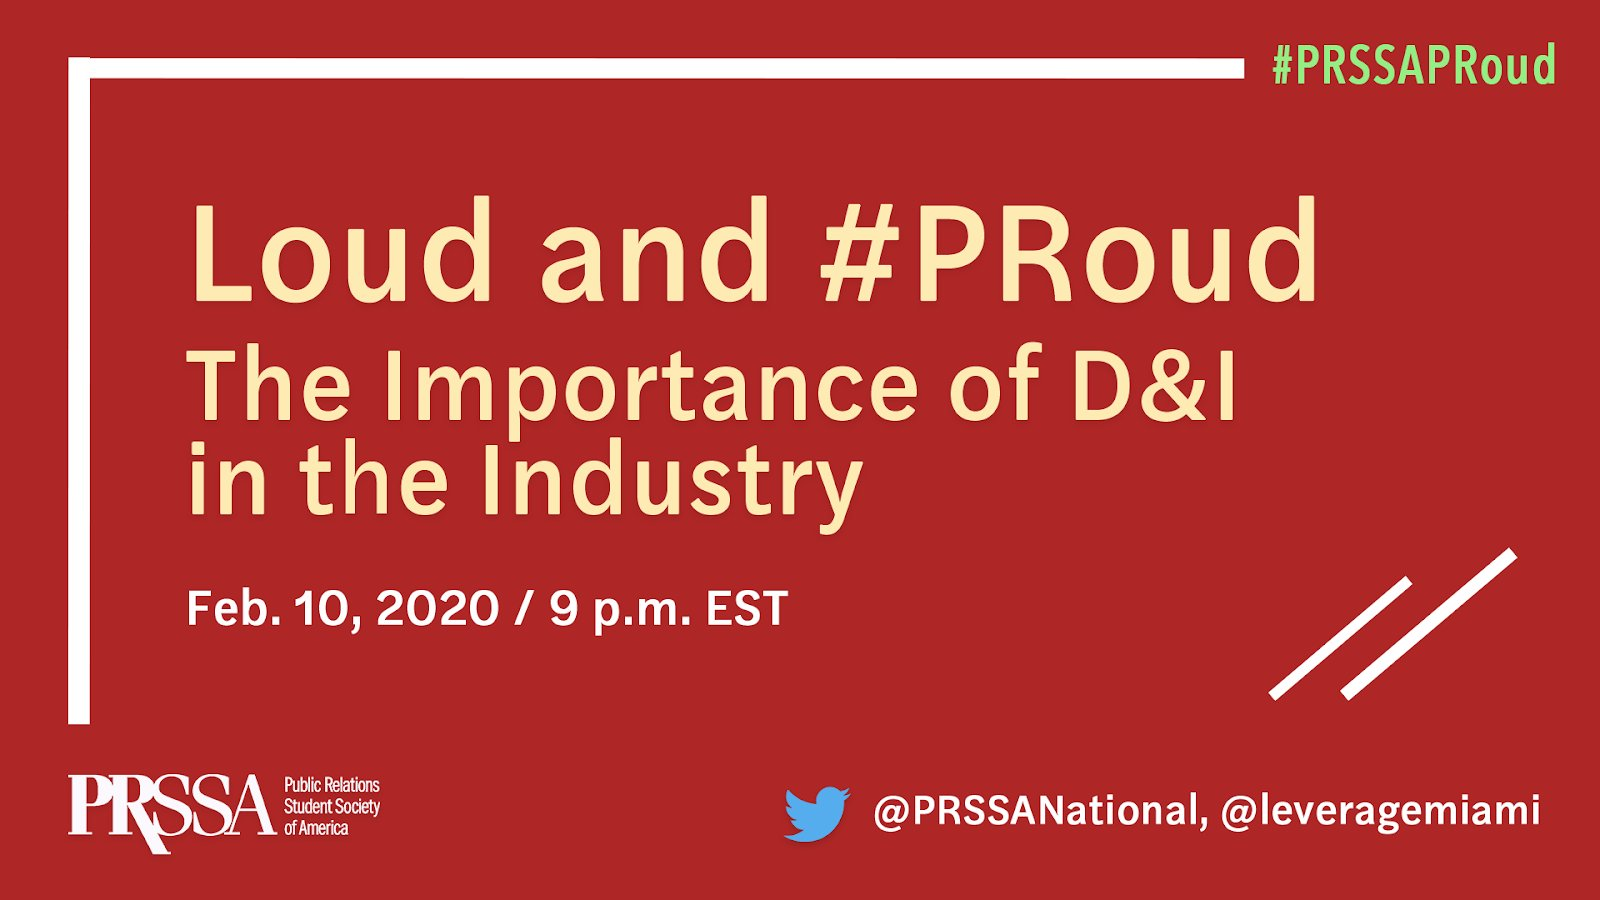 PRSSA PRoud Month — Twitter Chat Recap